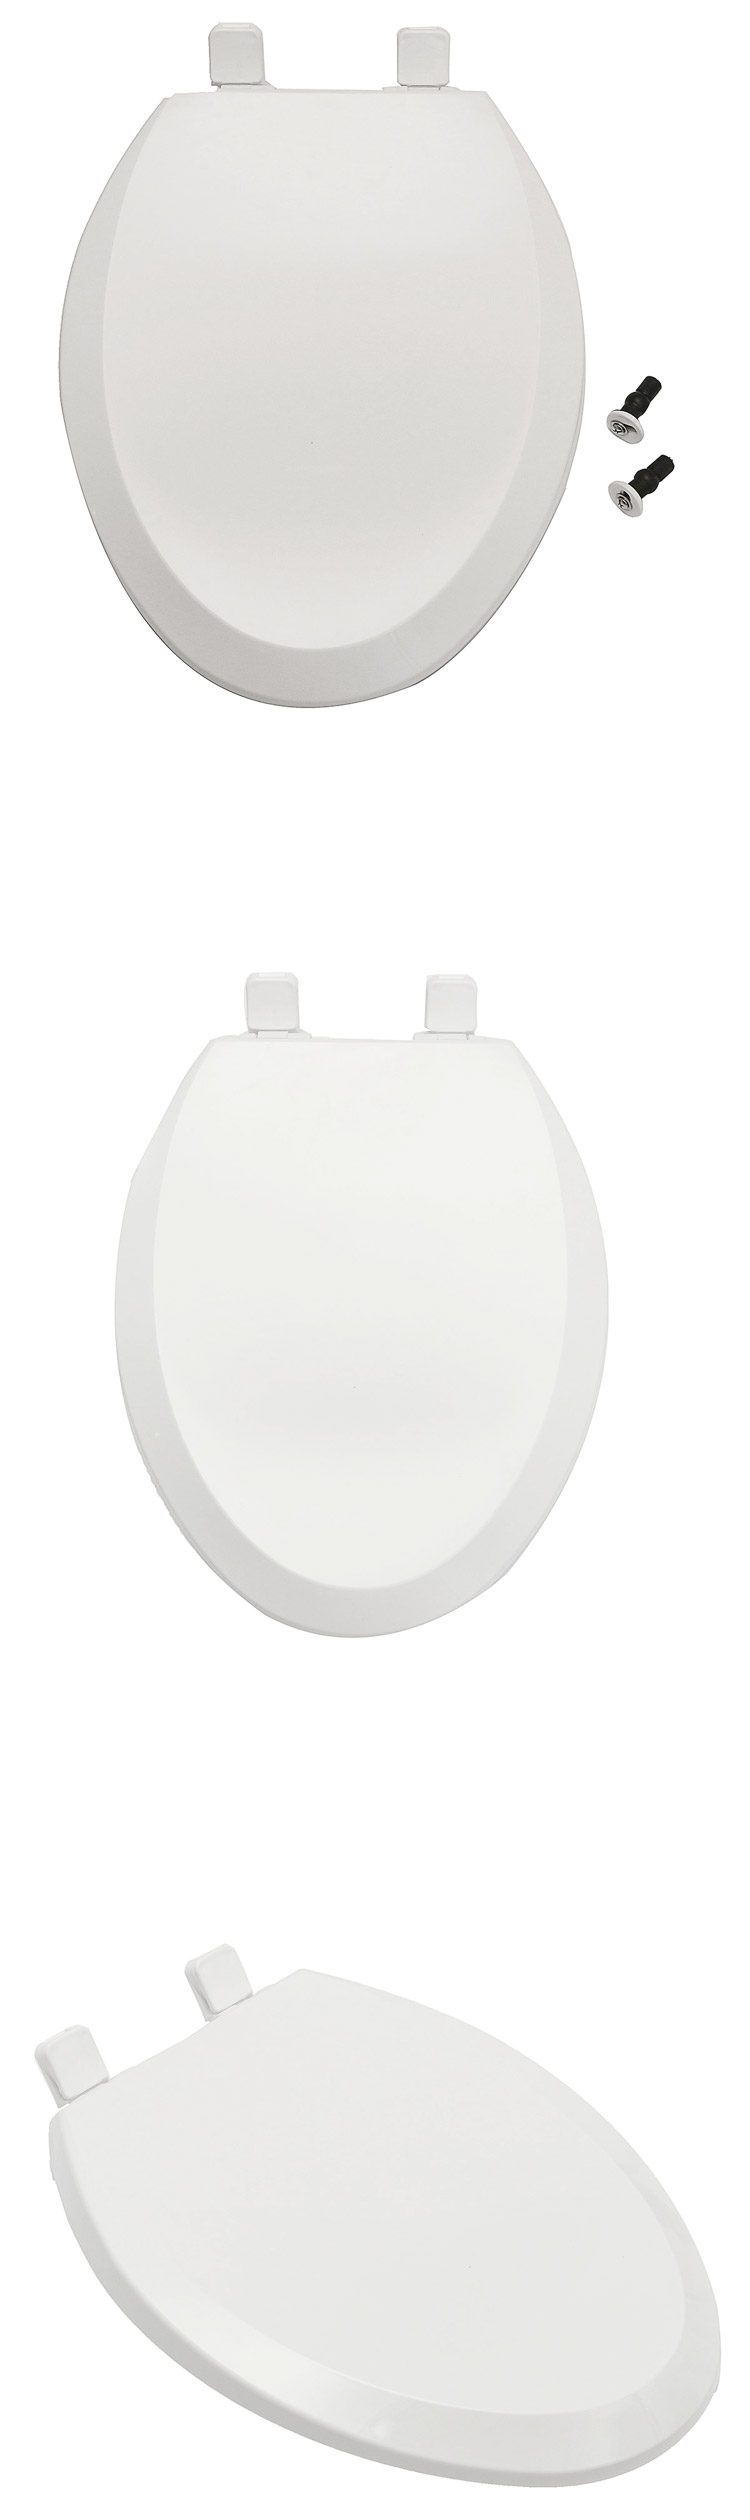 V-shaped Soft Closing Adult Thicker Toilet Seat Cover with Built-in Child Potty Training Seat